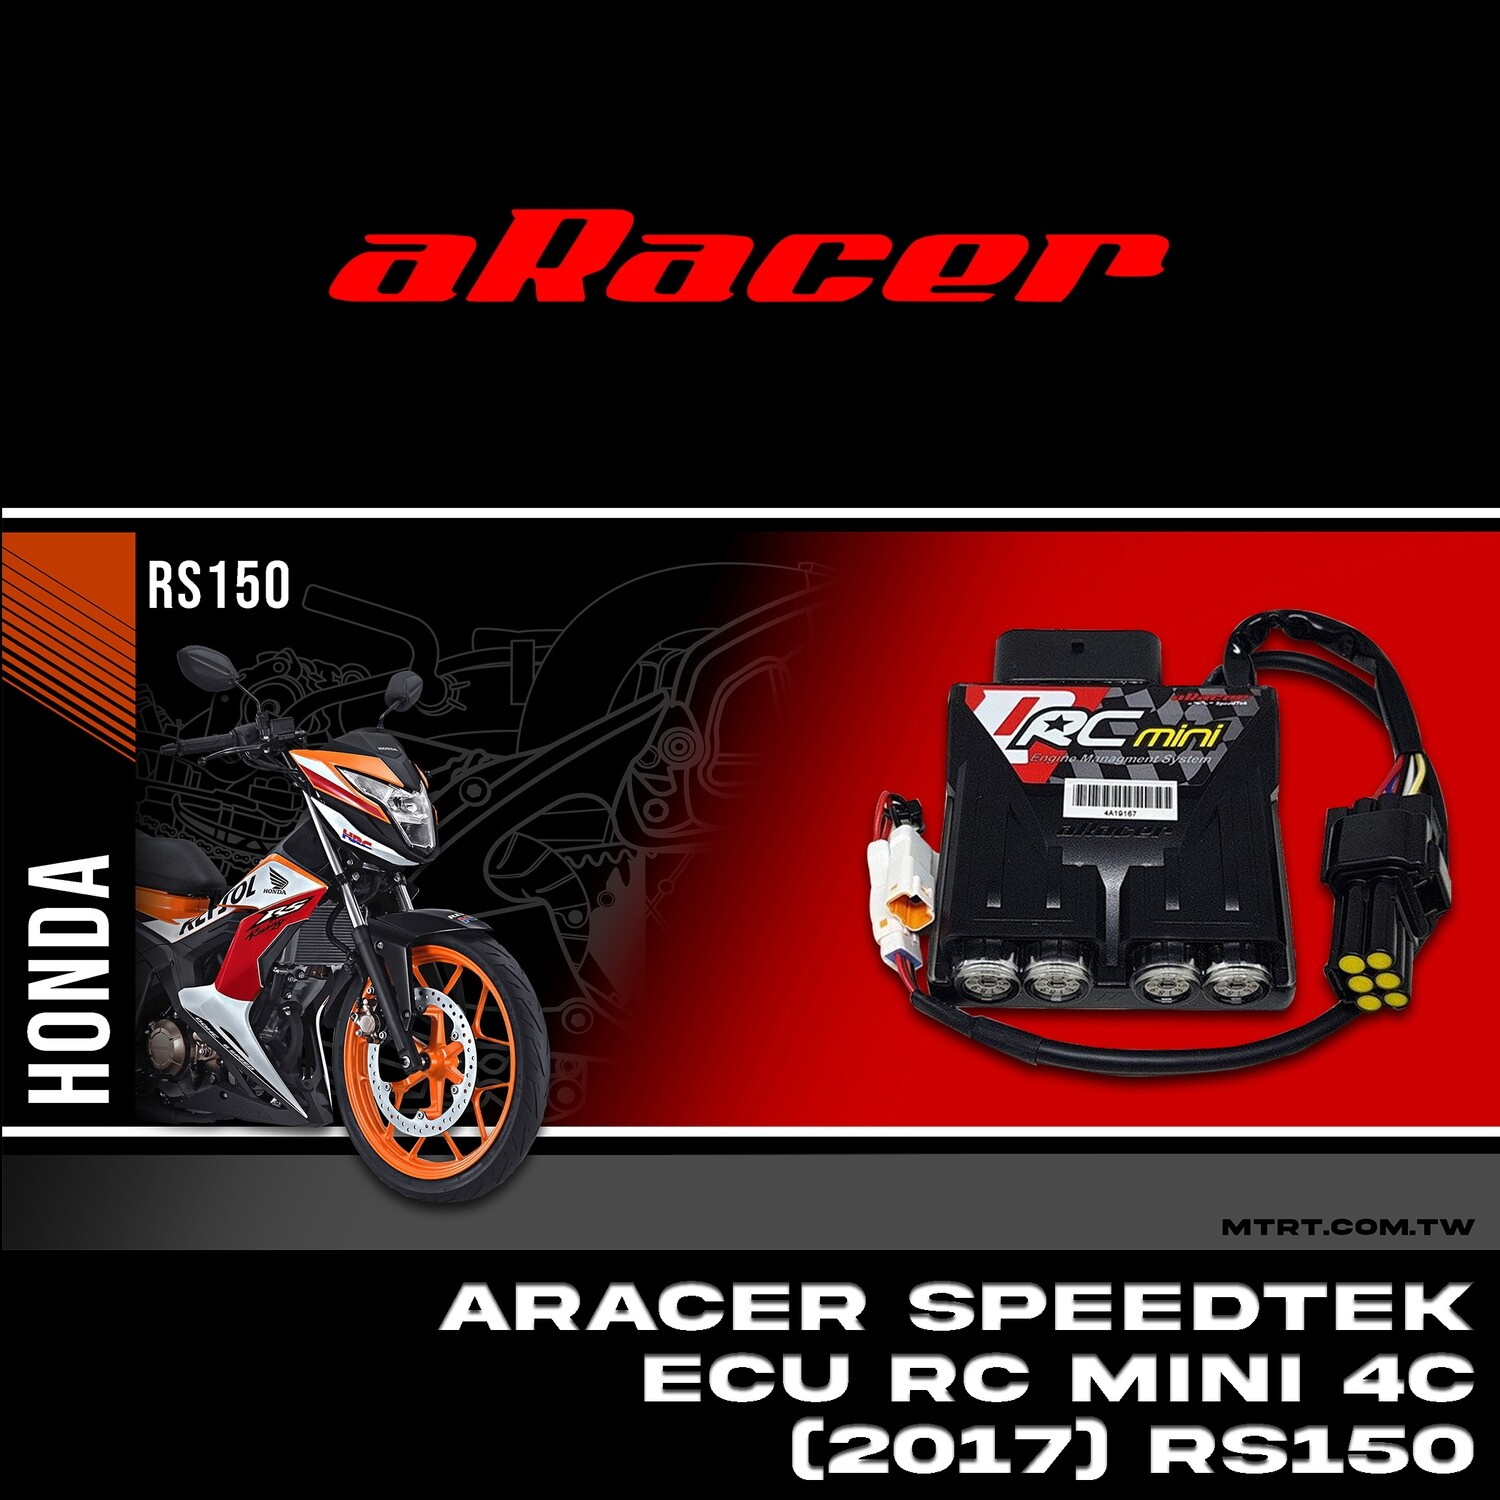 ARACER speedtek ECU RC Mini 4C RS150_SONIC(2017)